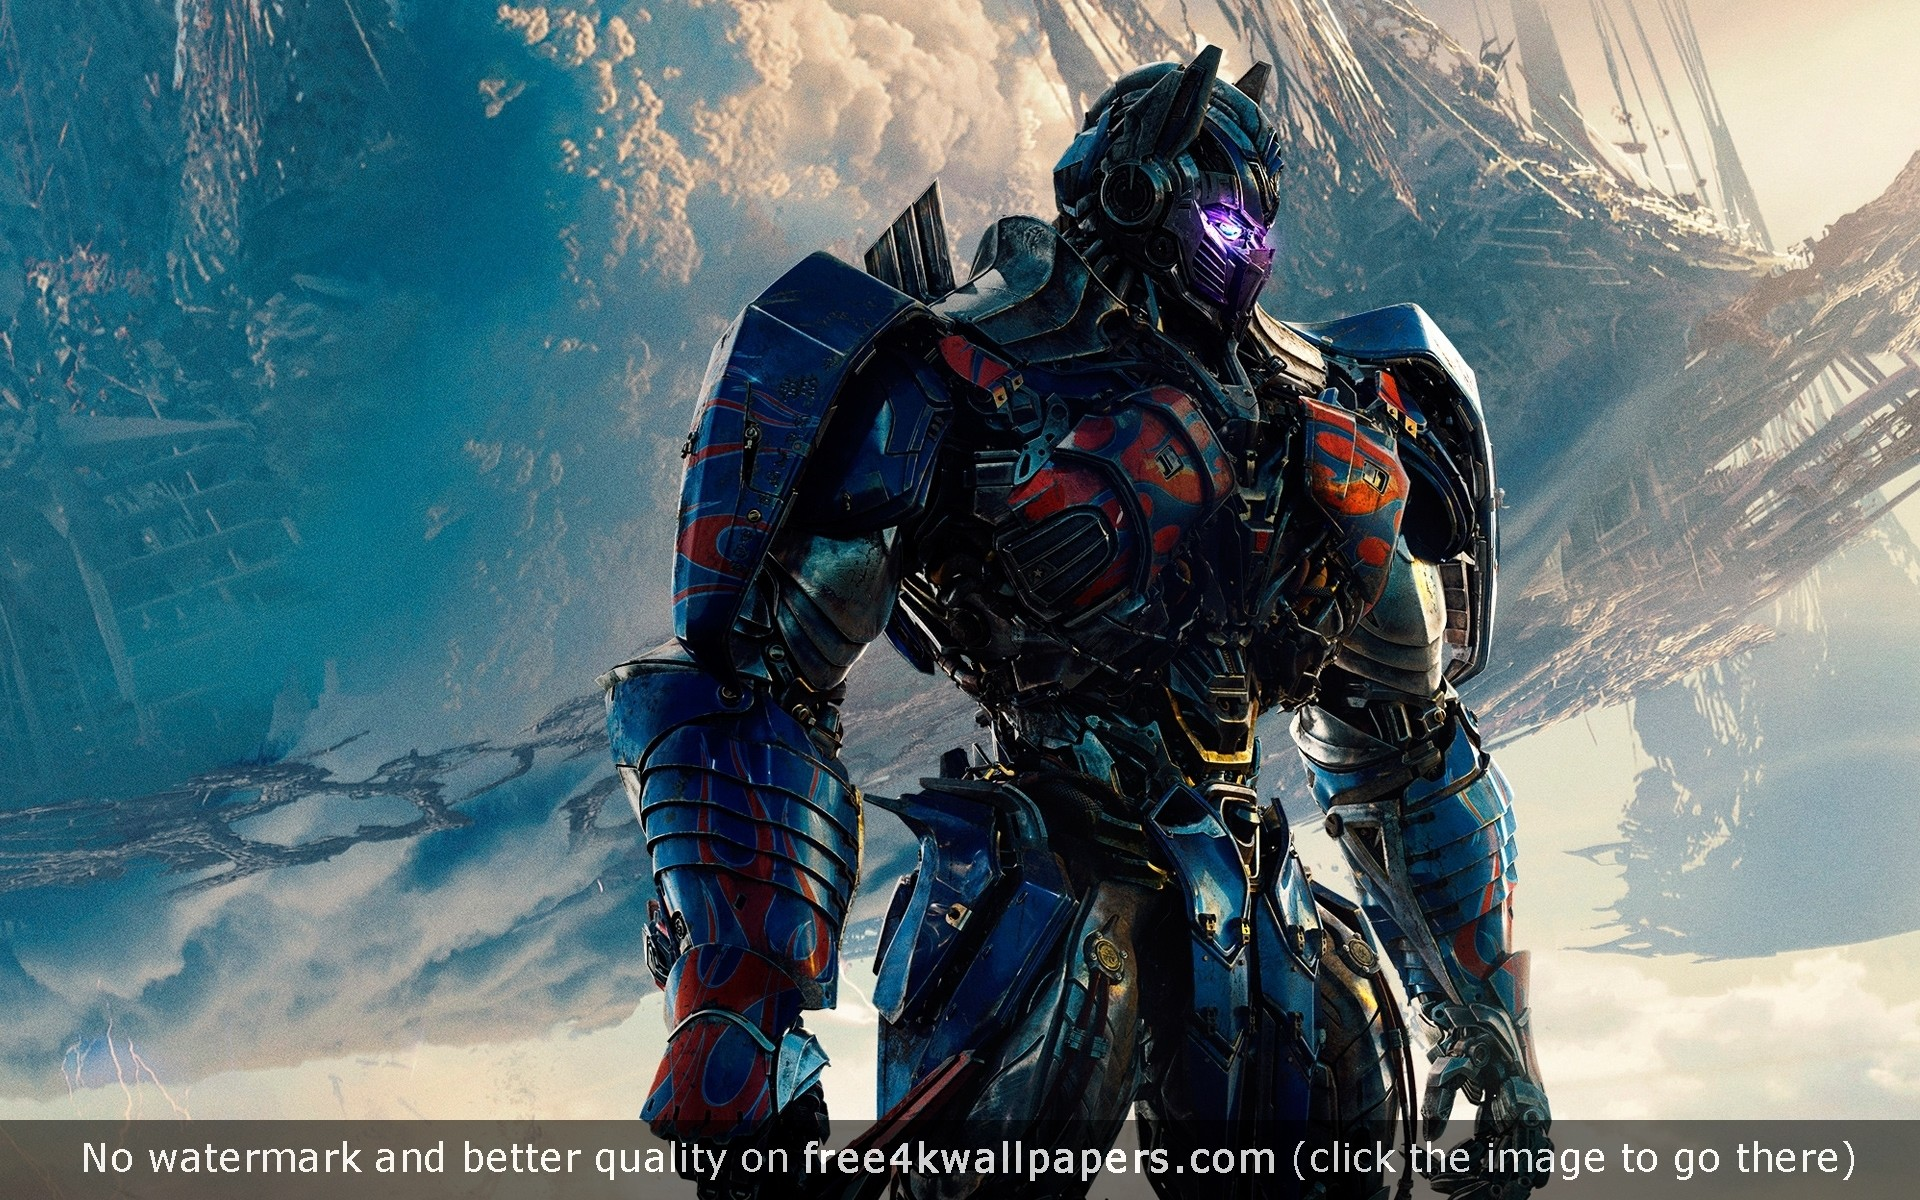 transformers 5 movie download